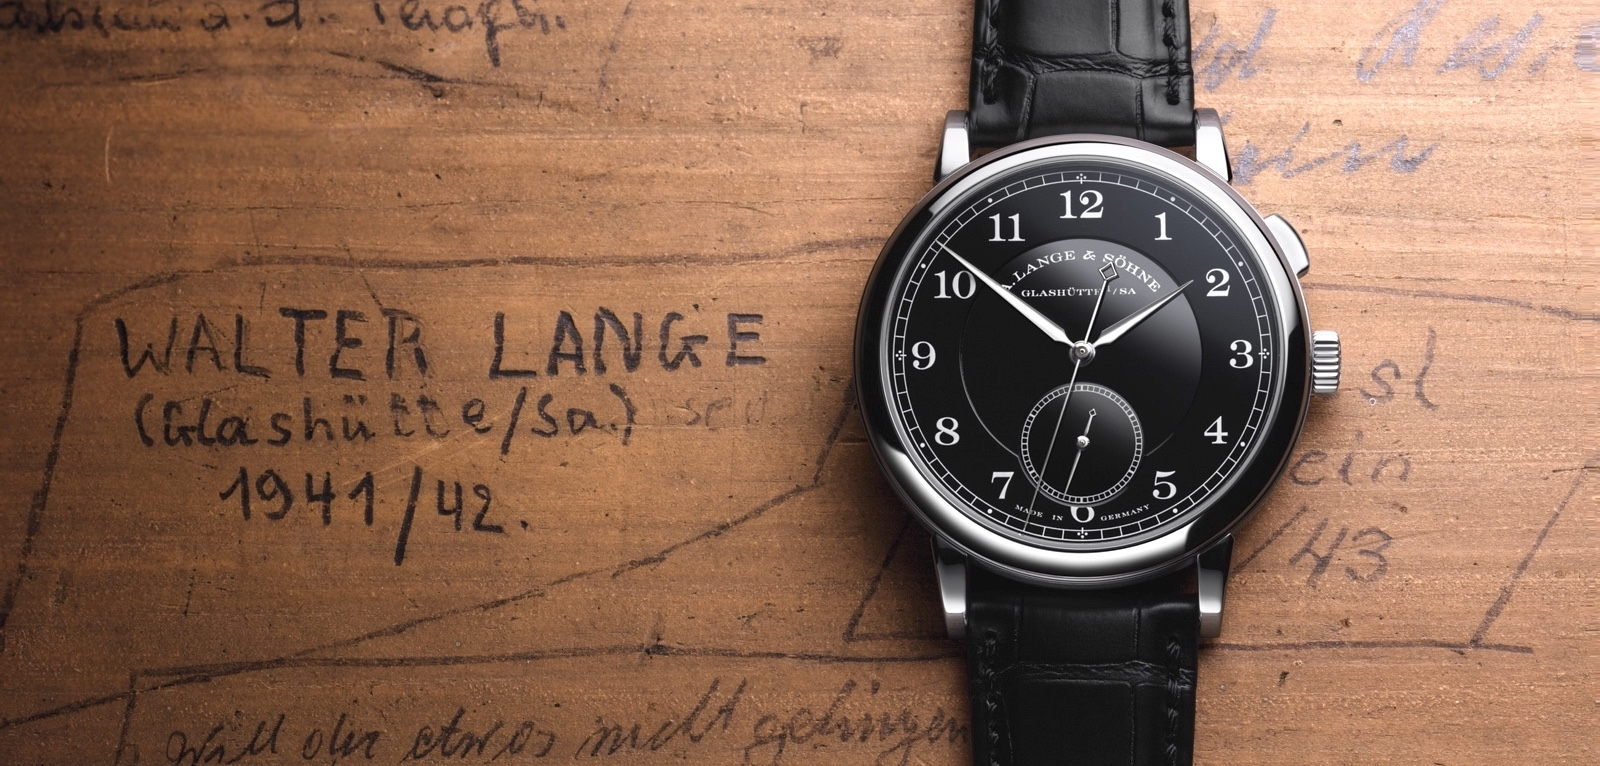 1815 Homage to Walter Lange. Un paisaje exquisito.